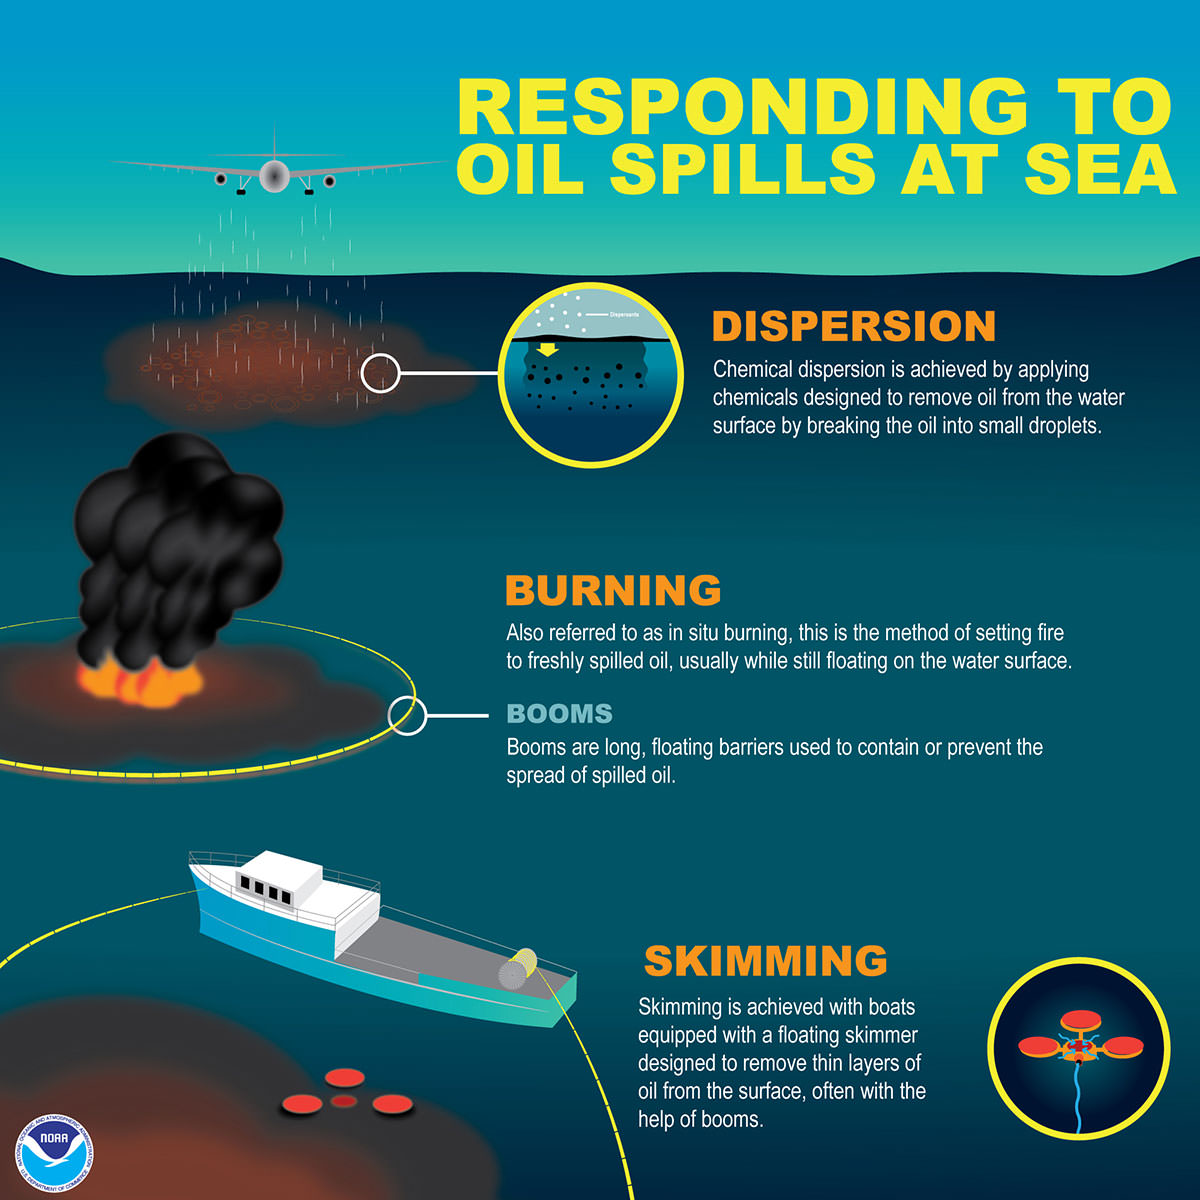 bp oil spill response Bp faces two crises the first is stopping the spillage of 200,000 gallons of oil a day in the gulf of mexico the other is convincing people it's tryi.